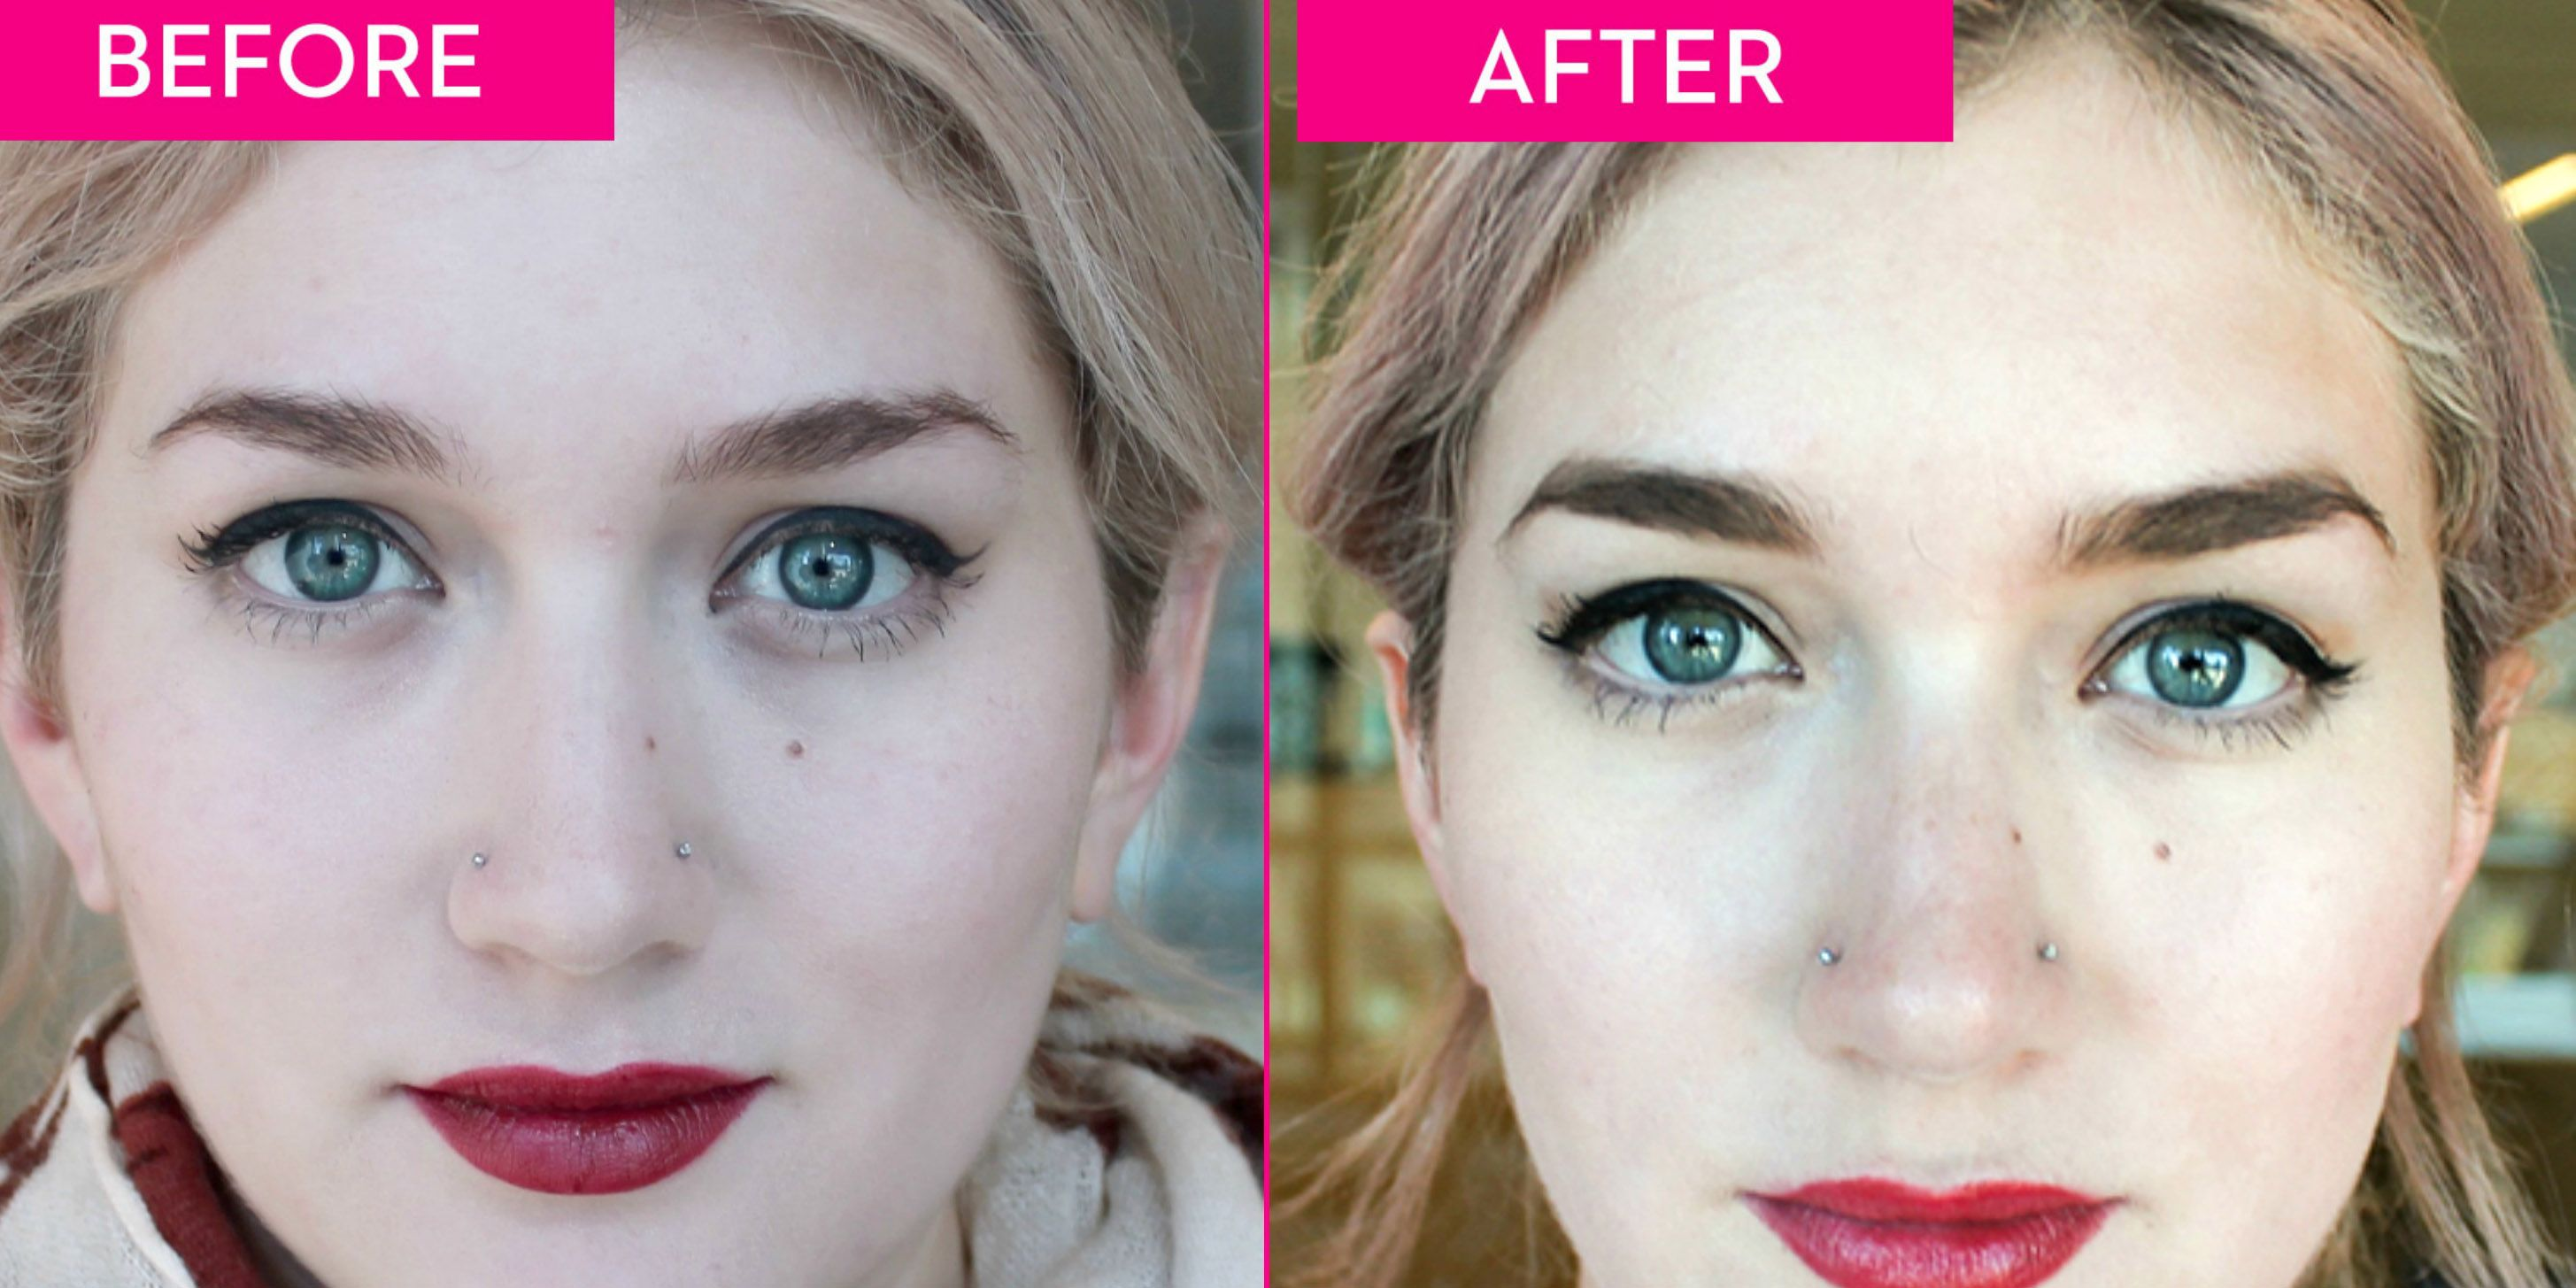 4 Eyebrow Makeovers Before And After Proof That Brows Totally